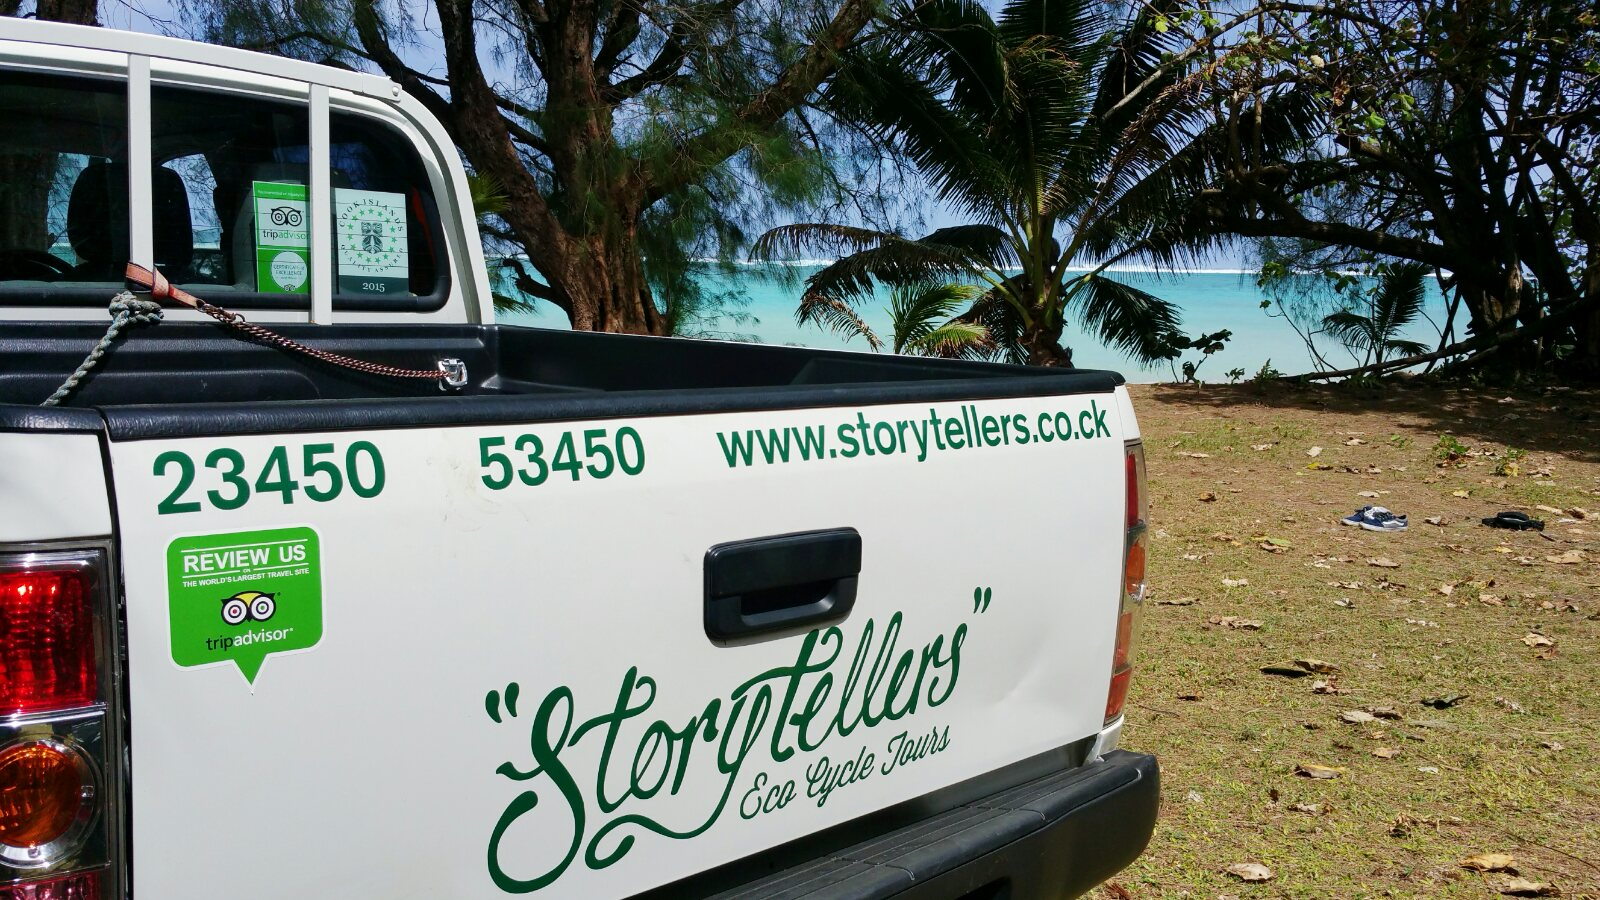 On Holiday in Rarotonga | Storytellers Eco Cycle Tours